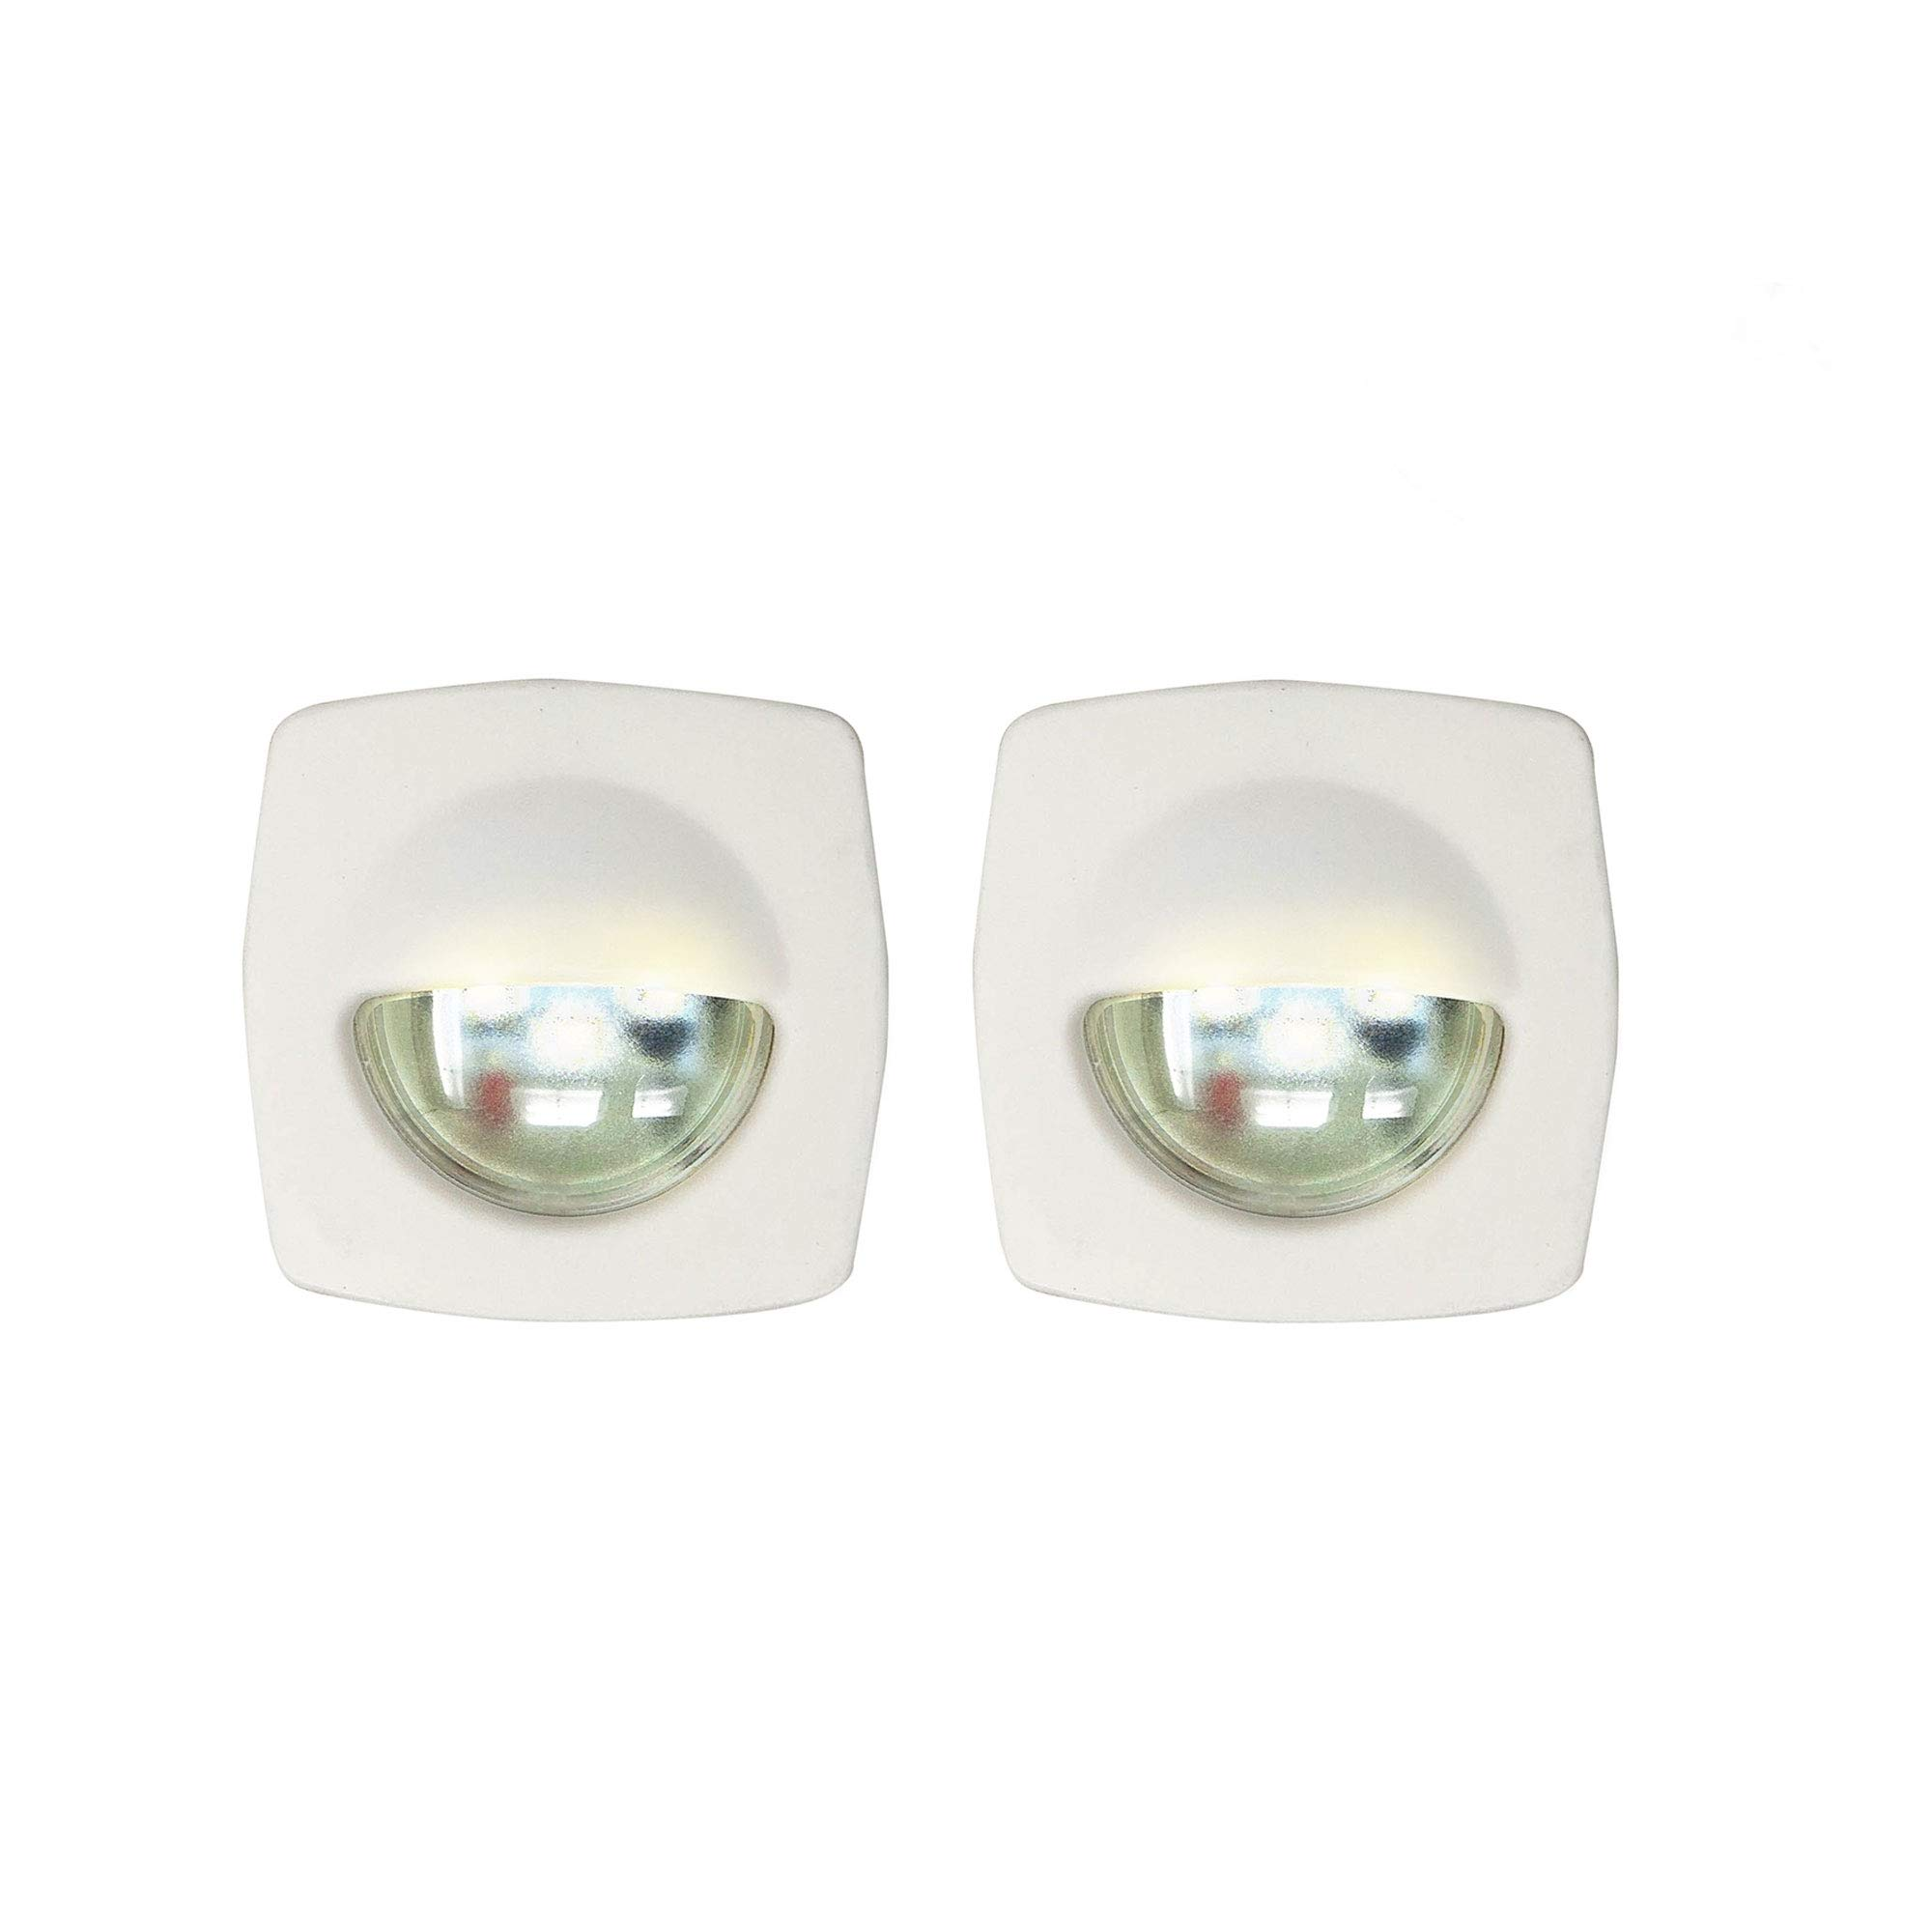 Five Oceans LED Cool White Companion Way Light, White (Pair) FO-3993